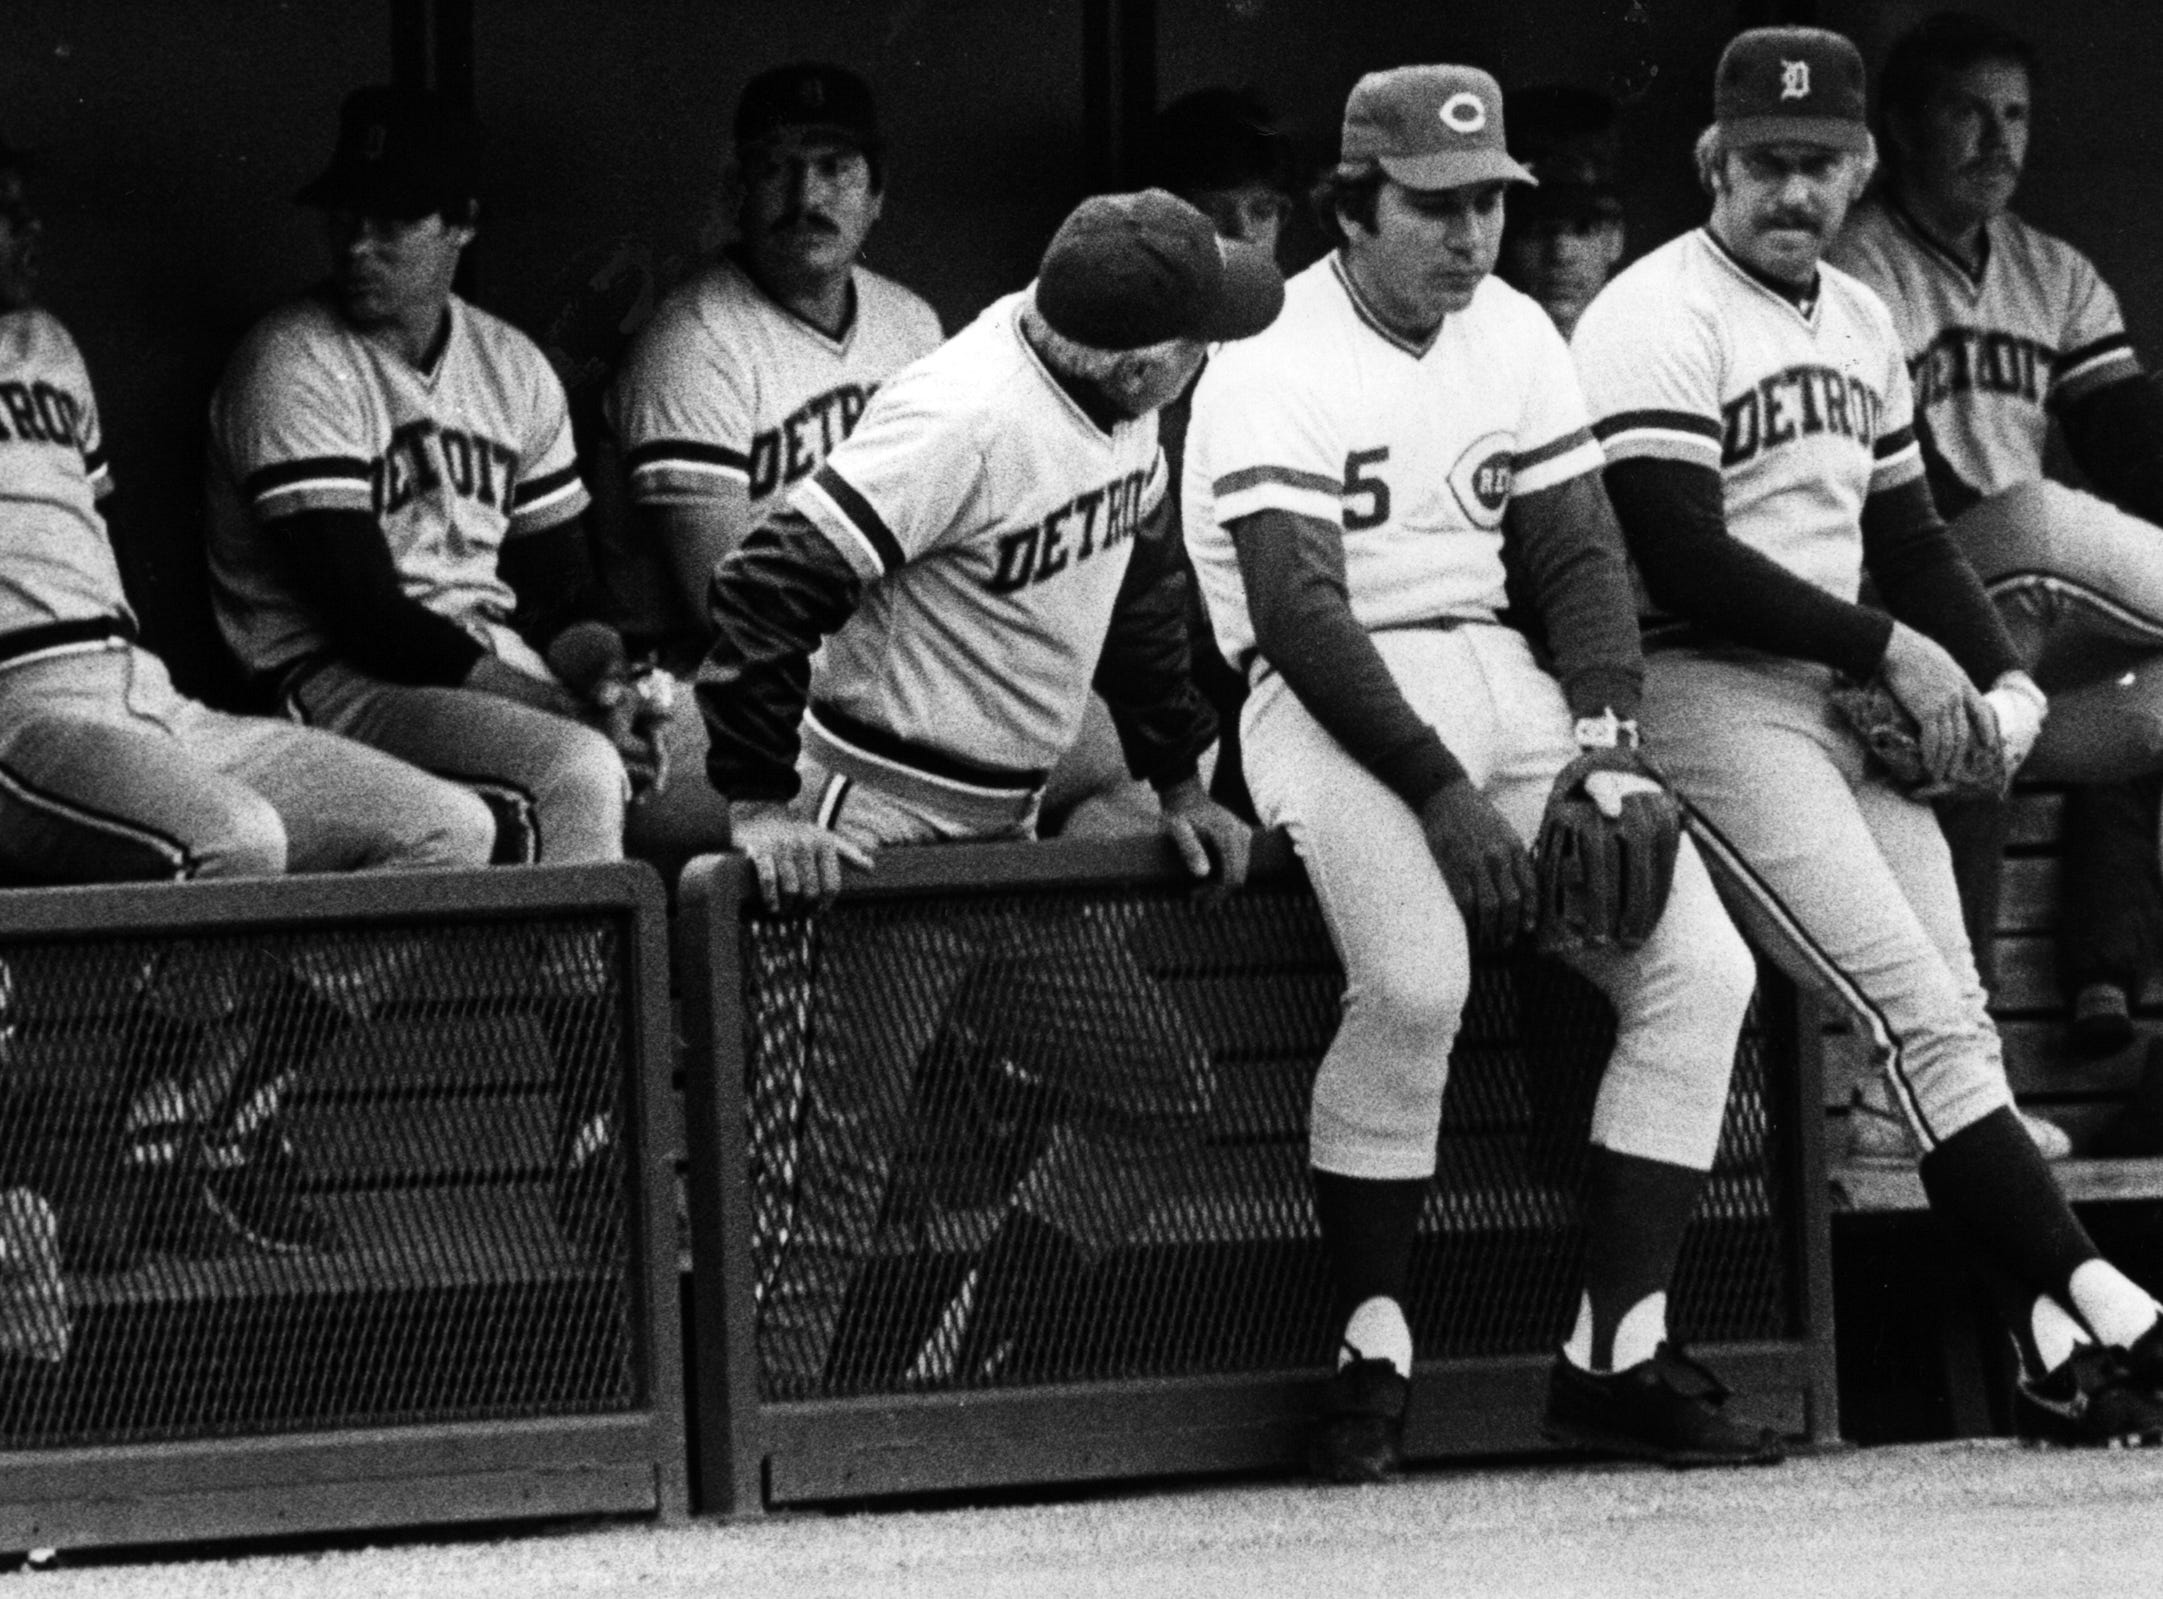 APRIL 26, 1983: Johnny Bench drops by the Detroit dugout Monday, 4/25/83, to visit with an old colleague, Sparky Anderson, in town for the Kid Glove Game. AP Photo/David Kohl scanned August 7, 2013